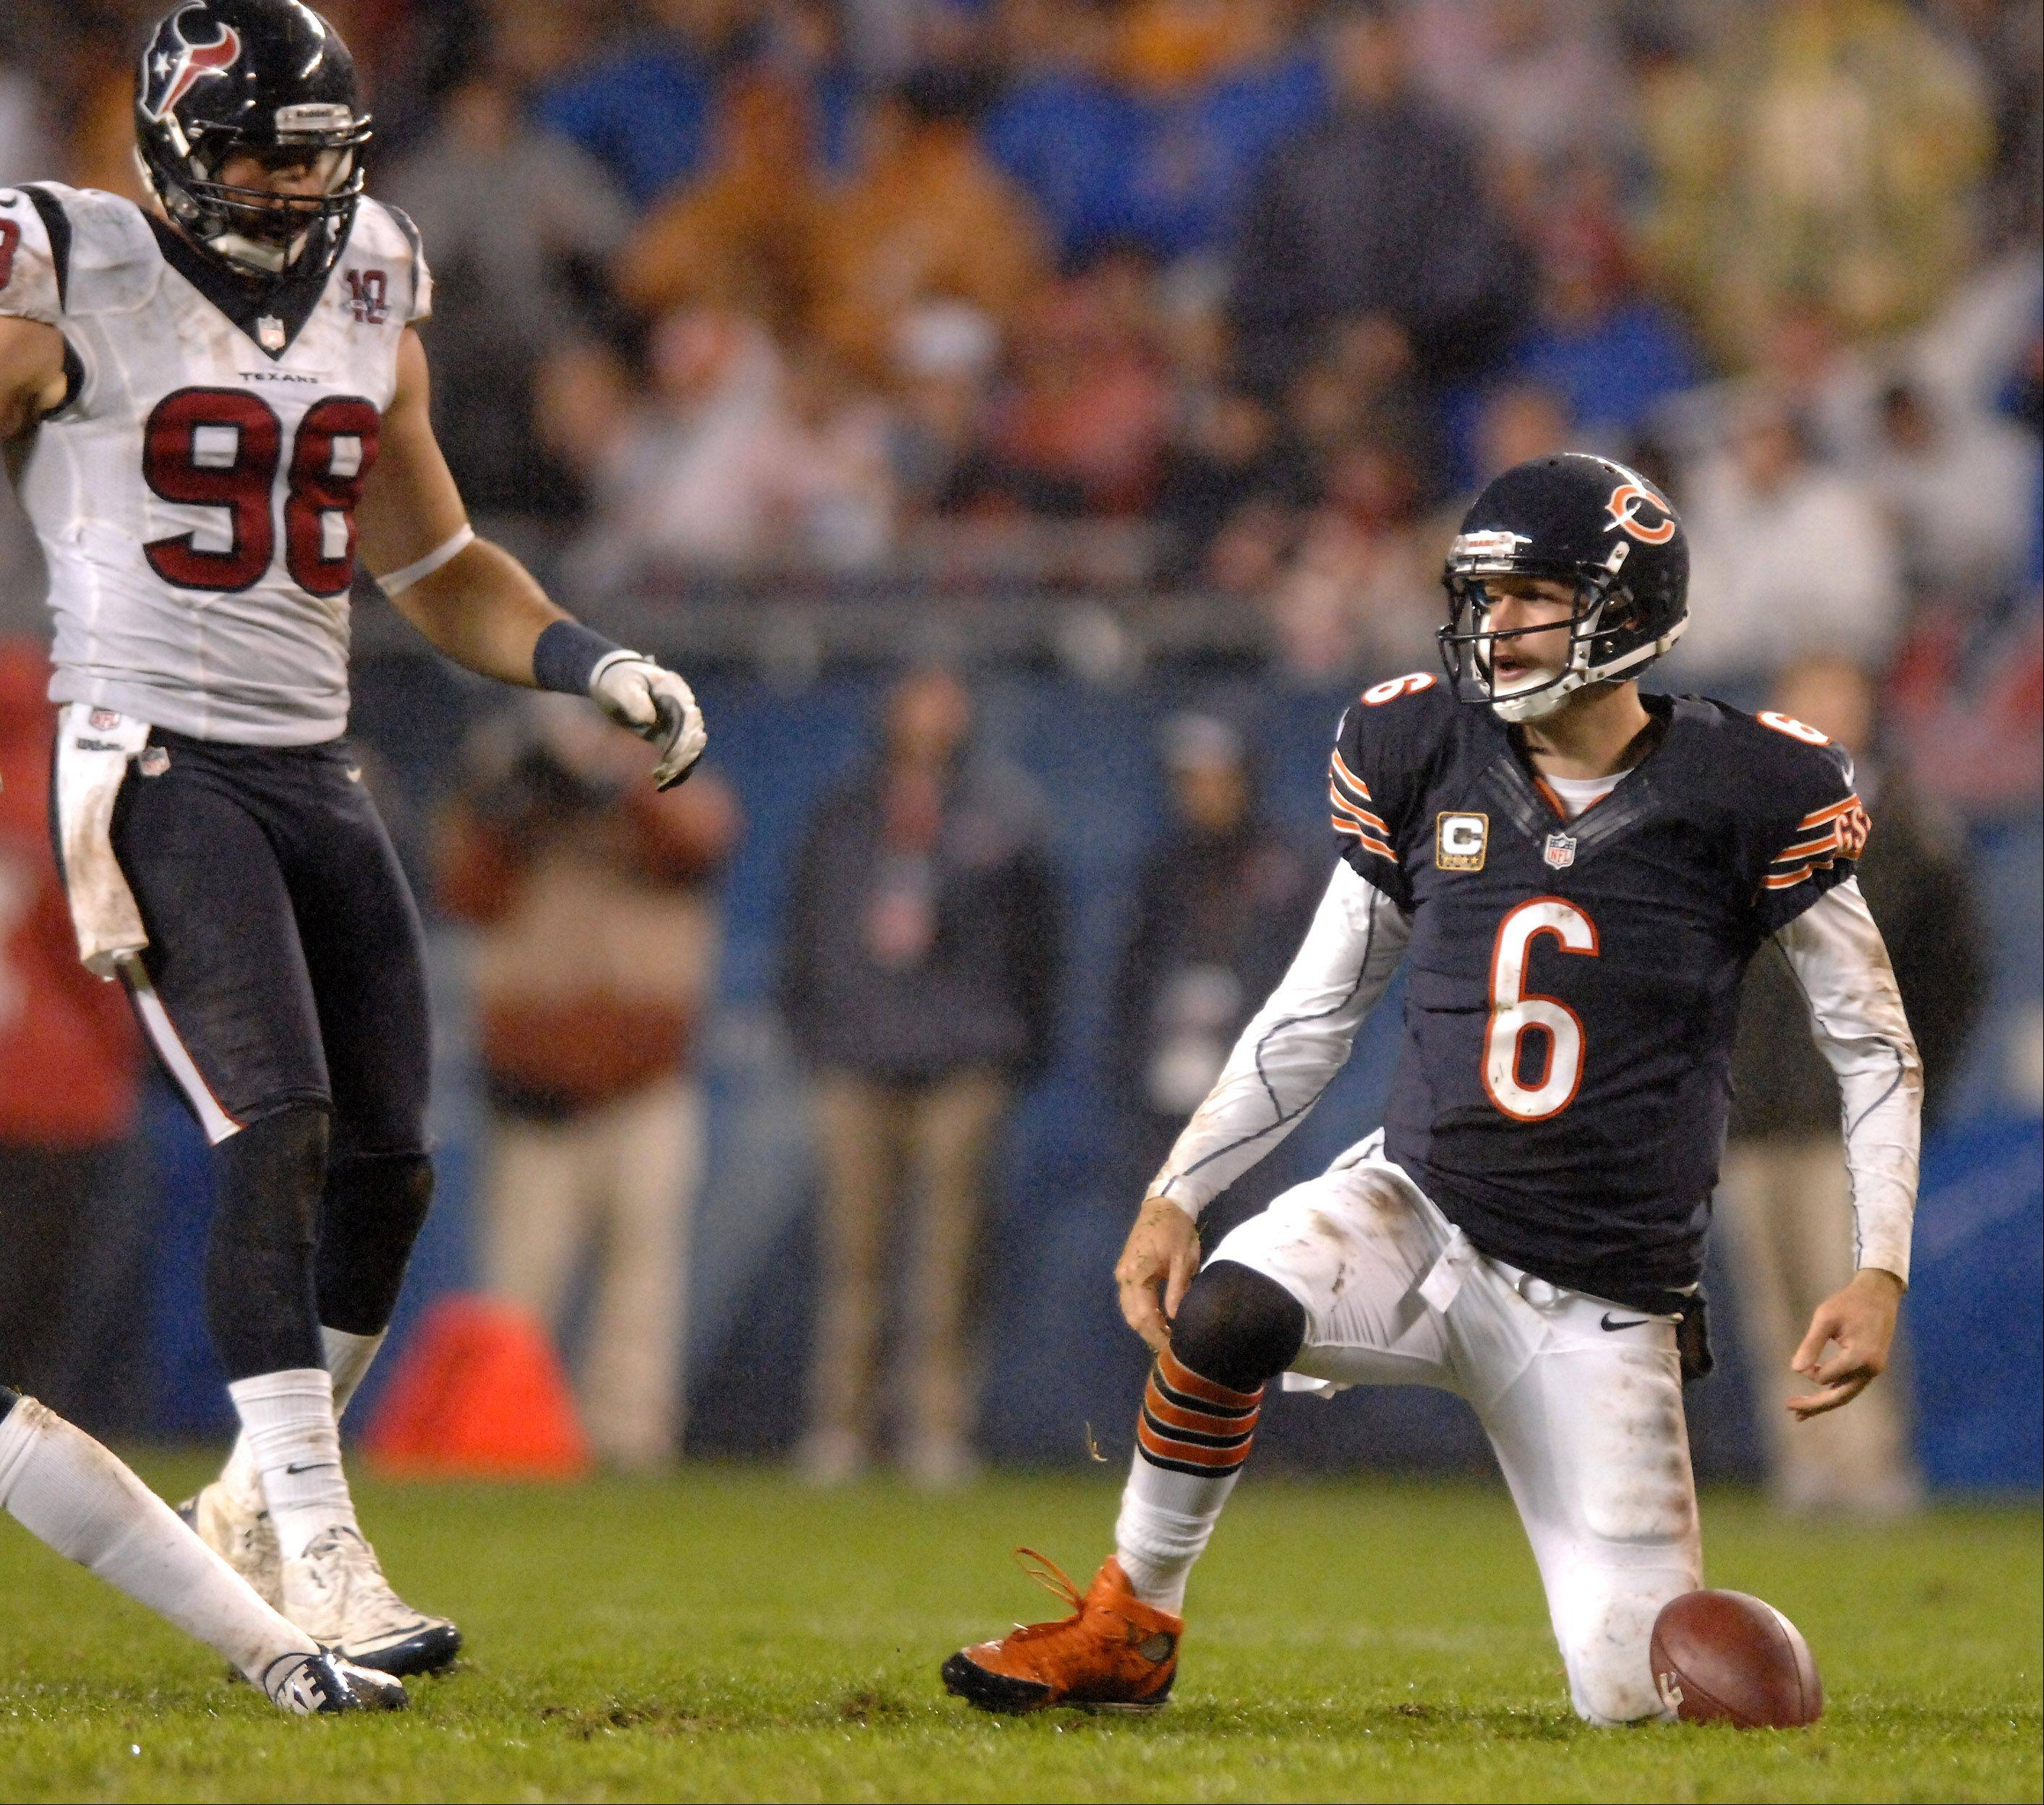 Chicago Bears quarterback Jay Cutler (6) gets up after a second quarter hit that may have resulted in a concussion during Sunday�s game at Soldier Field in Chicago. Cutler did not return to the game in the second half.